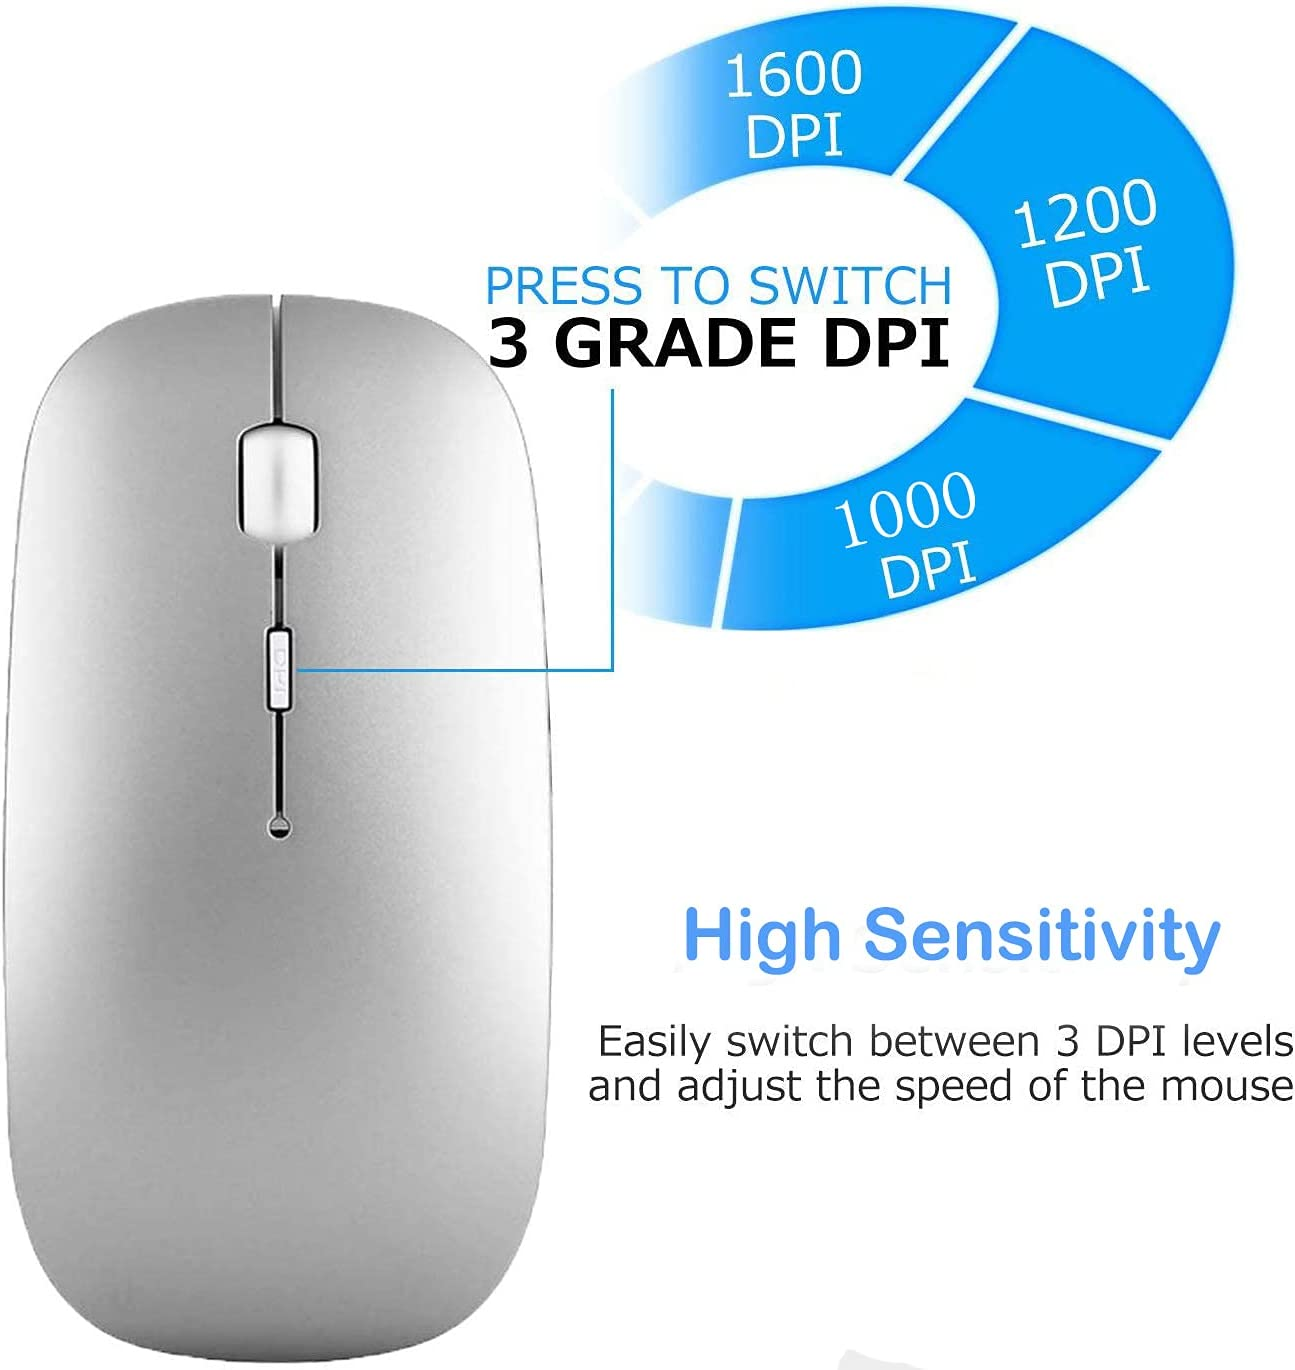 Wireless Mouse, Rechargeable Dual Mode(Bluetooth5.0 and USB) 2.4GHz Bluetooth Wireless Mouse for Mac/MacBook Air/iPad iOS 13/Windows, Portable Optical Silent Wireless Slim Mouse for Computer Laptop PC